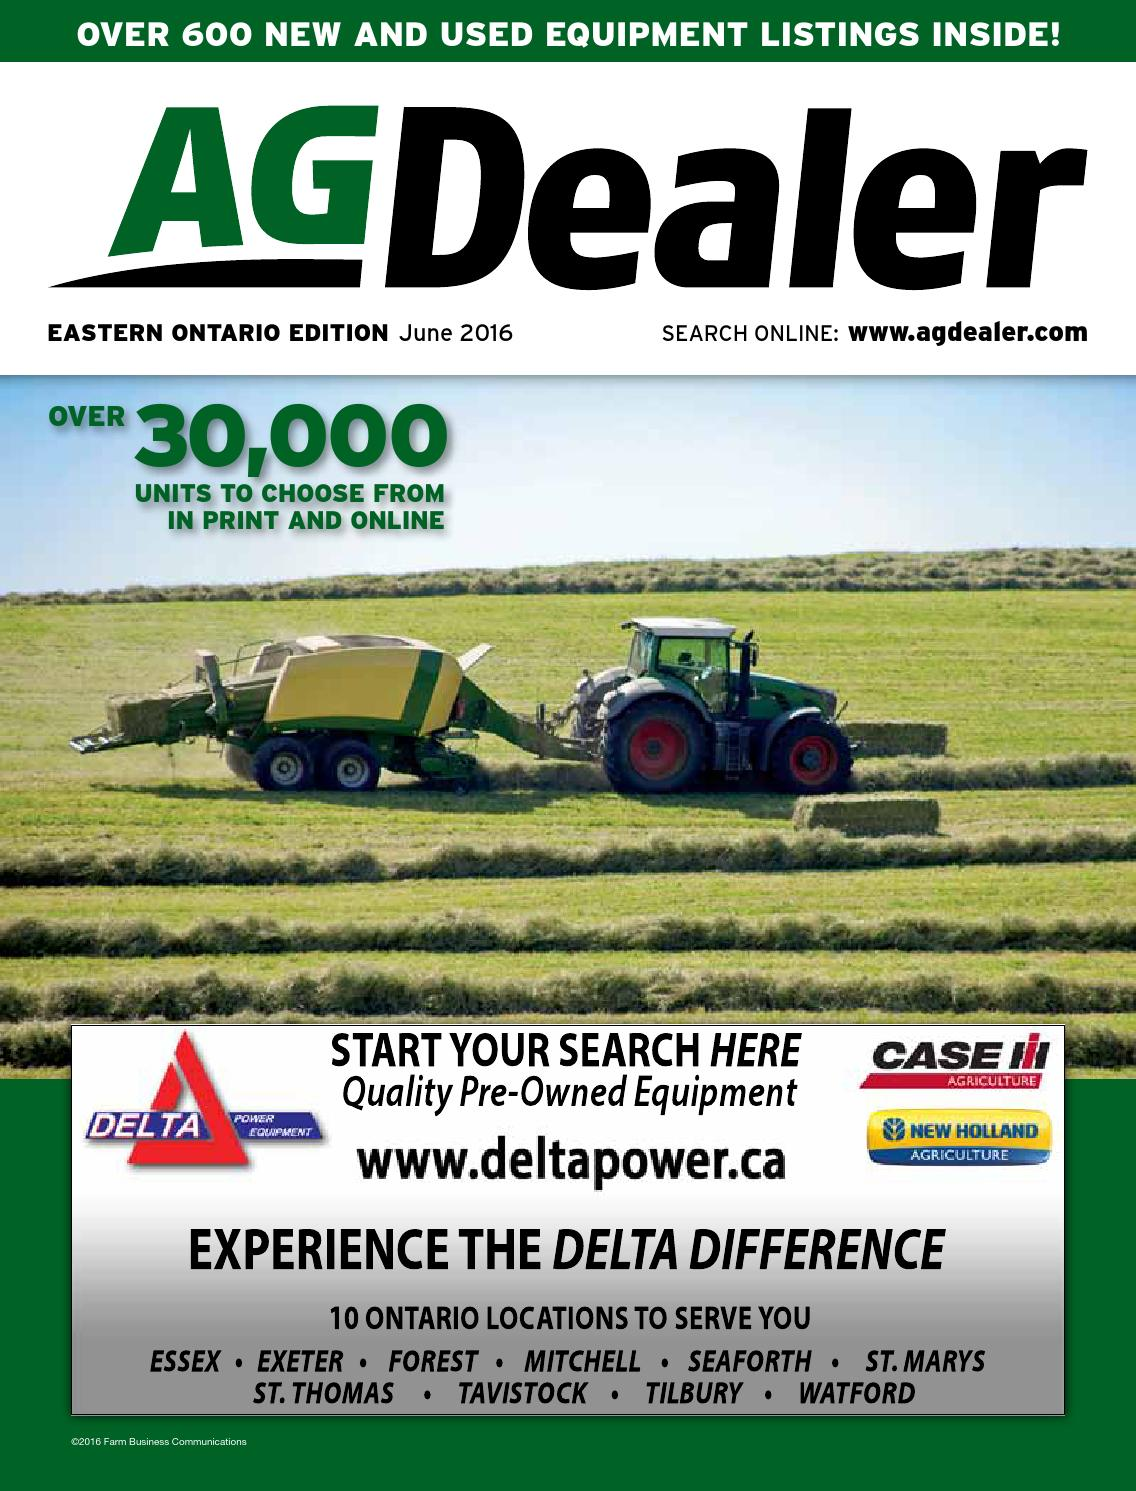 AGDealer Eastern Ontario Edition, June 2016 by Farm Business Communications  - issuu